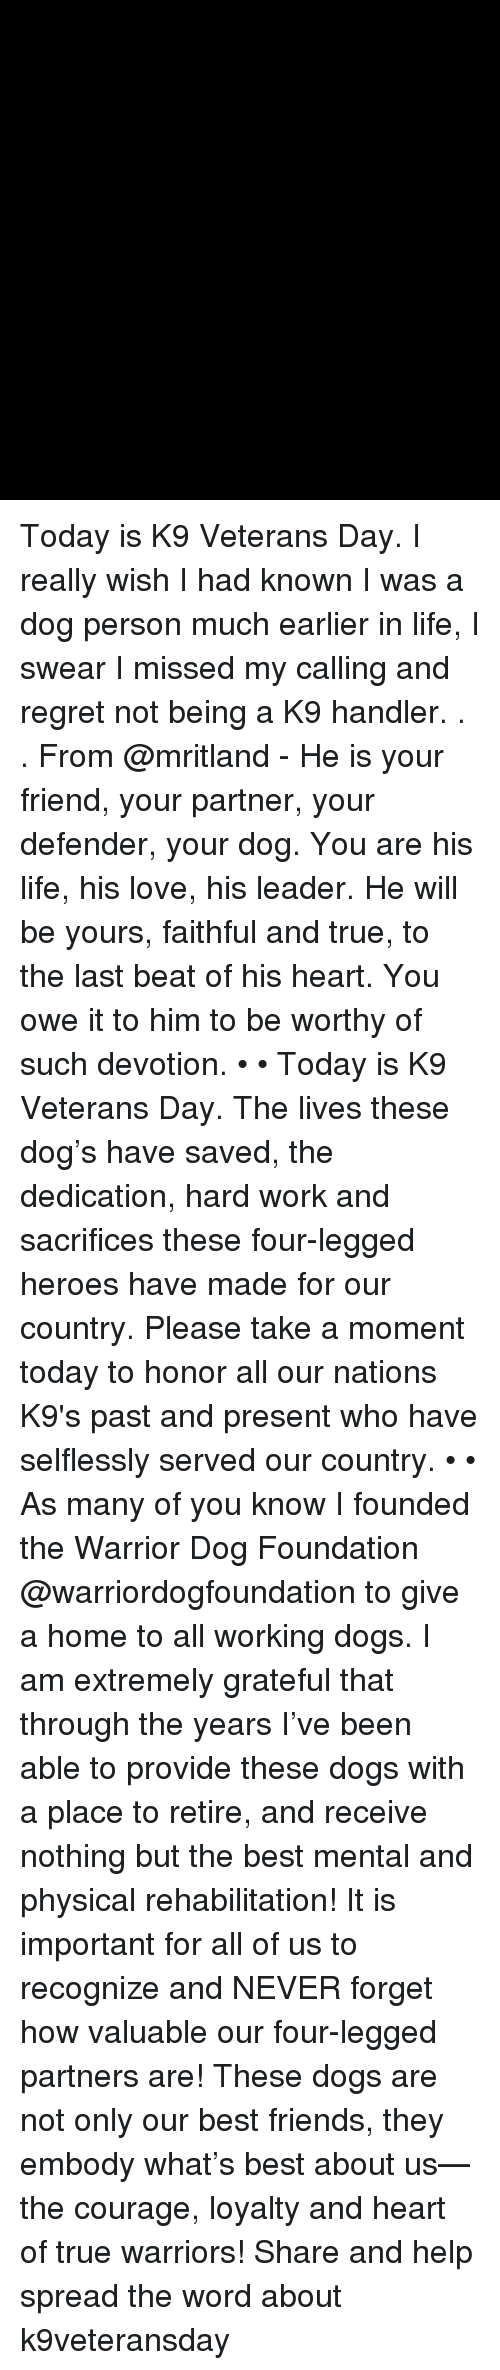 Dogs, Friends, and Life: Today is K9 Veterans Day. I really wish I had known I was a dog person much earlier in life, I swear I missed my calling and regret not being a K9 handler. . . From @mritland - He is your friend, your partner, your defender, your dog. You are his life, his love, his leader. He will be yours, faithful and true, to the last beat of his heart. You owe it to him to be worthy of such devotion. • • Today is K9 Veterans Day. The lives these dog's have saved, the dedication, hard work and sacrifices these four-legged heroes have made for our country. Please take a moment today to honor all our nations K9's past and present who have selflessly served our country. • • As many of you know I founded the Warrior Dog Foundation @warriordogfoundation to give a home to all working dogs. I am extremely grateful that through the years I've been able to provide these dogs with a place to retire, and receive nothing but the best mental and physical rehabilitation! It is important for all of us to recognize and NEVER forget how valuable our four-legged partners are! These dogs are not only our best friends, they embody what's best about us—the courage, loyalty and heart of true warriors! Share and help spread the word about k9veteransday